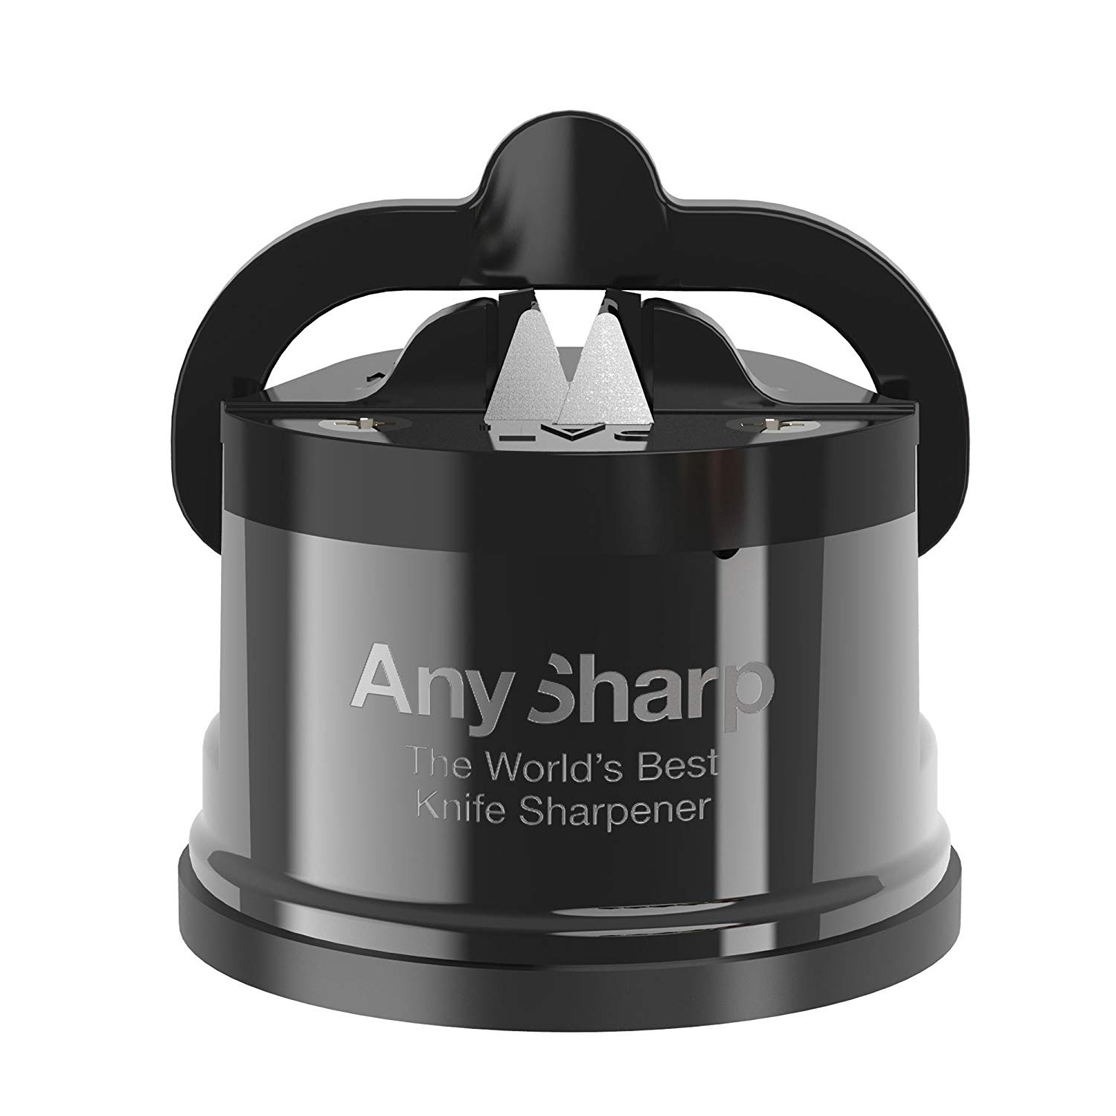 AnySharp Knife Sharpener